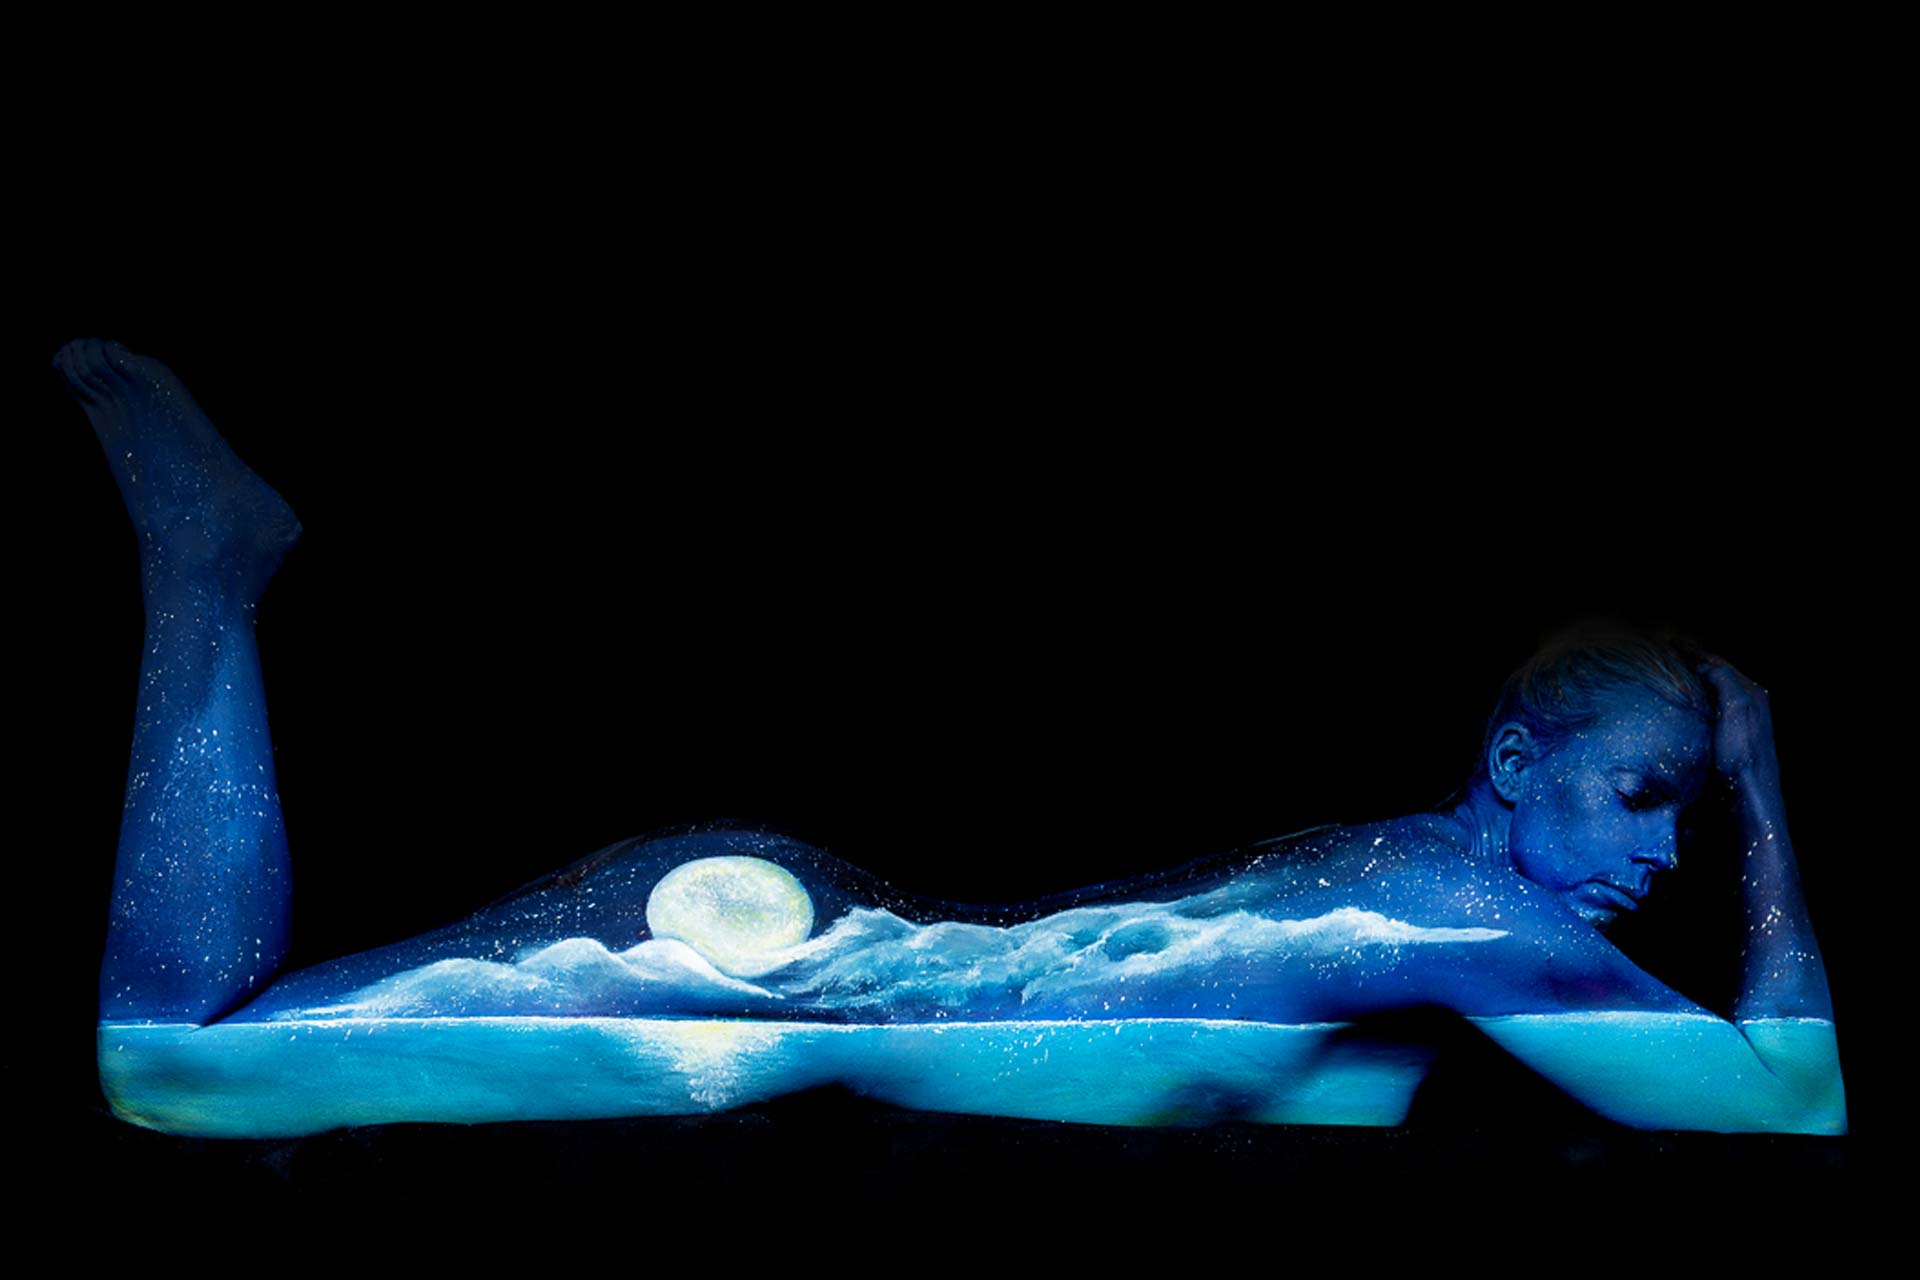 Moonscape Bodypainting 1